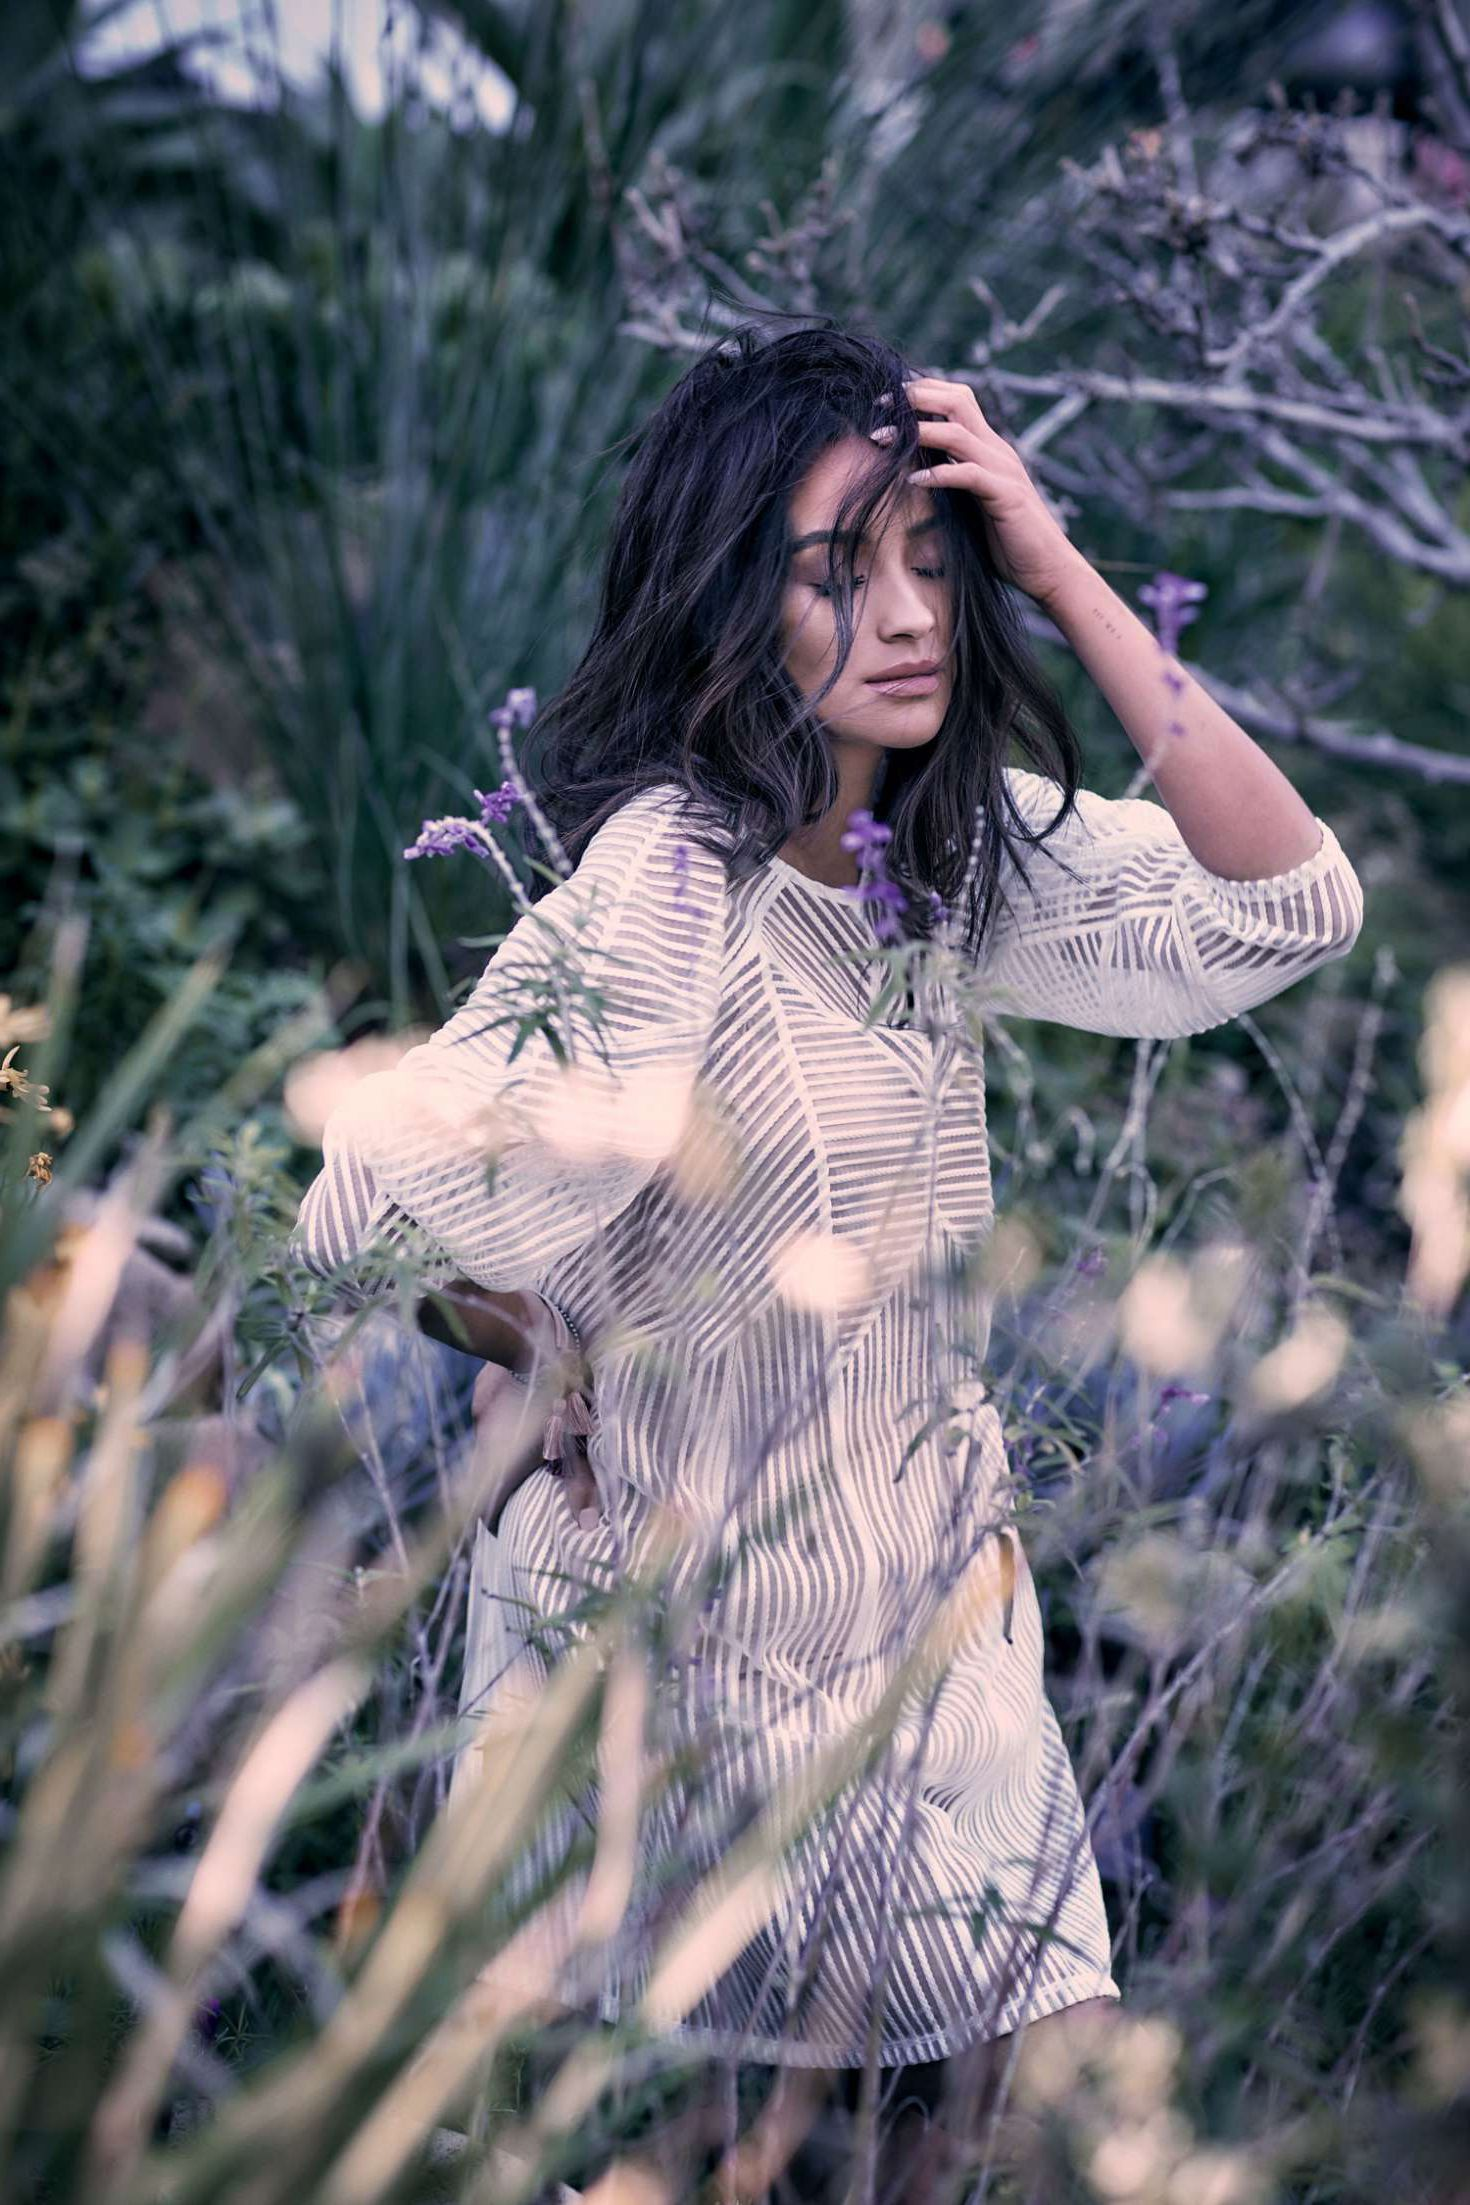 Shay in white stripped dress